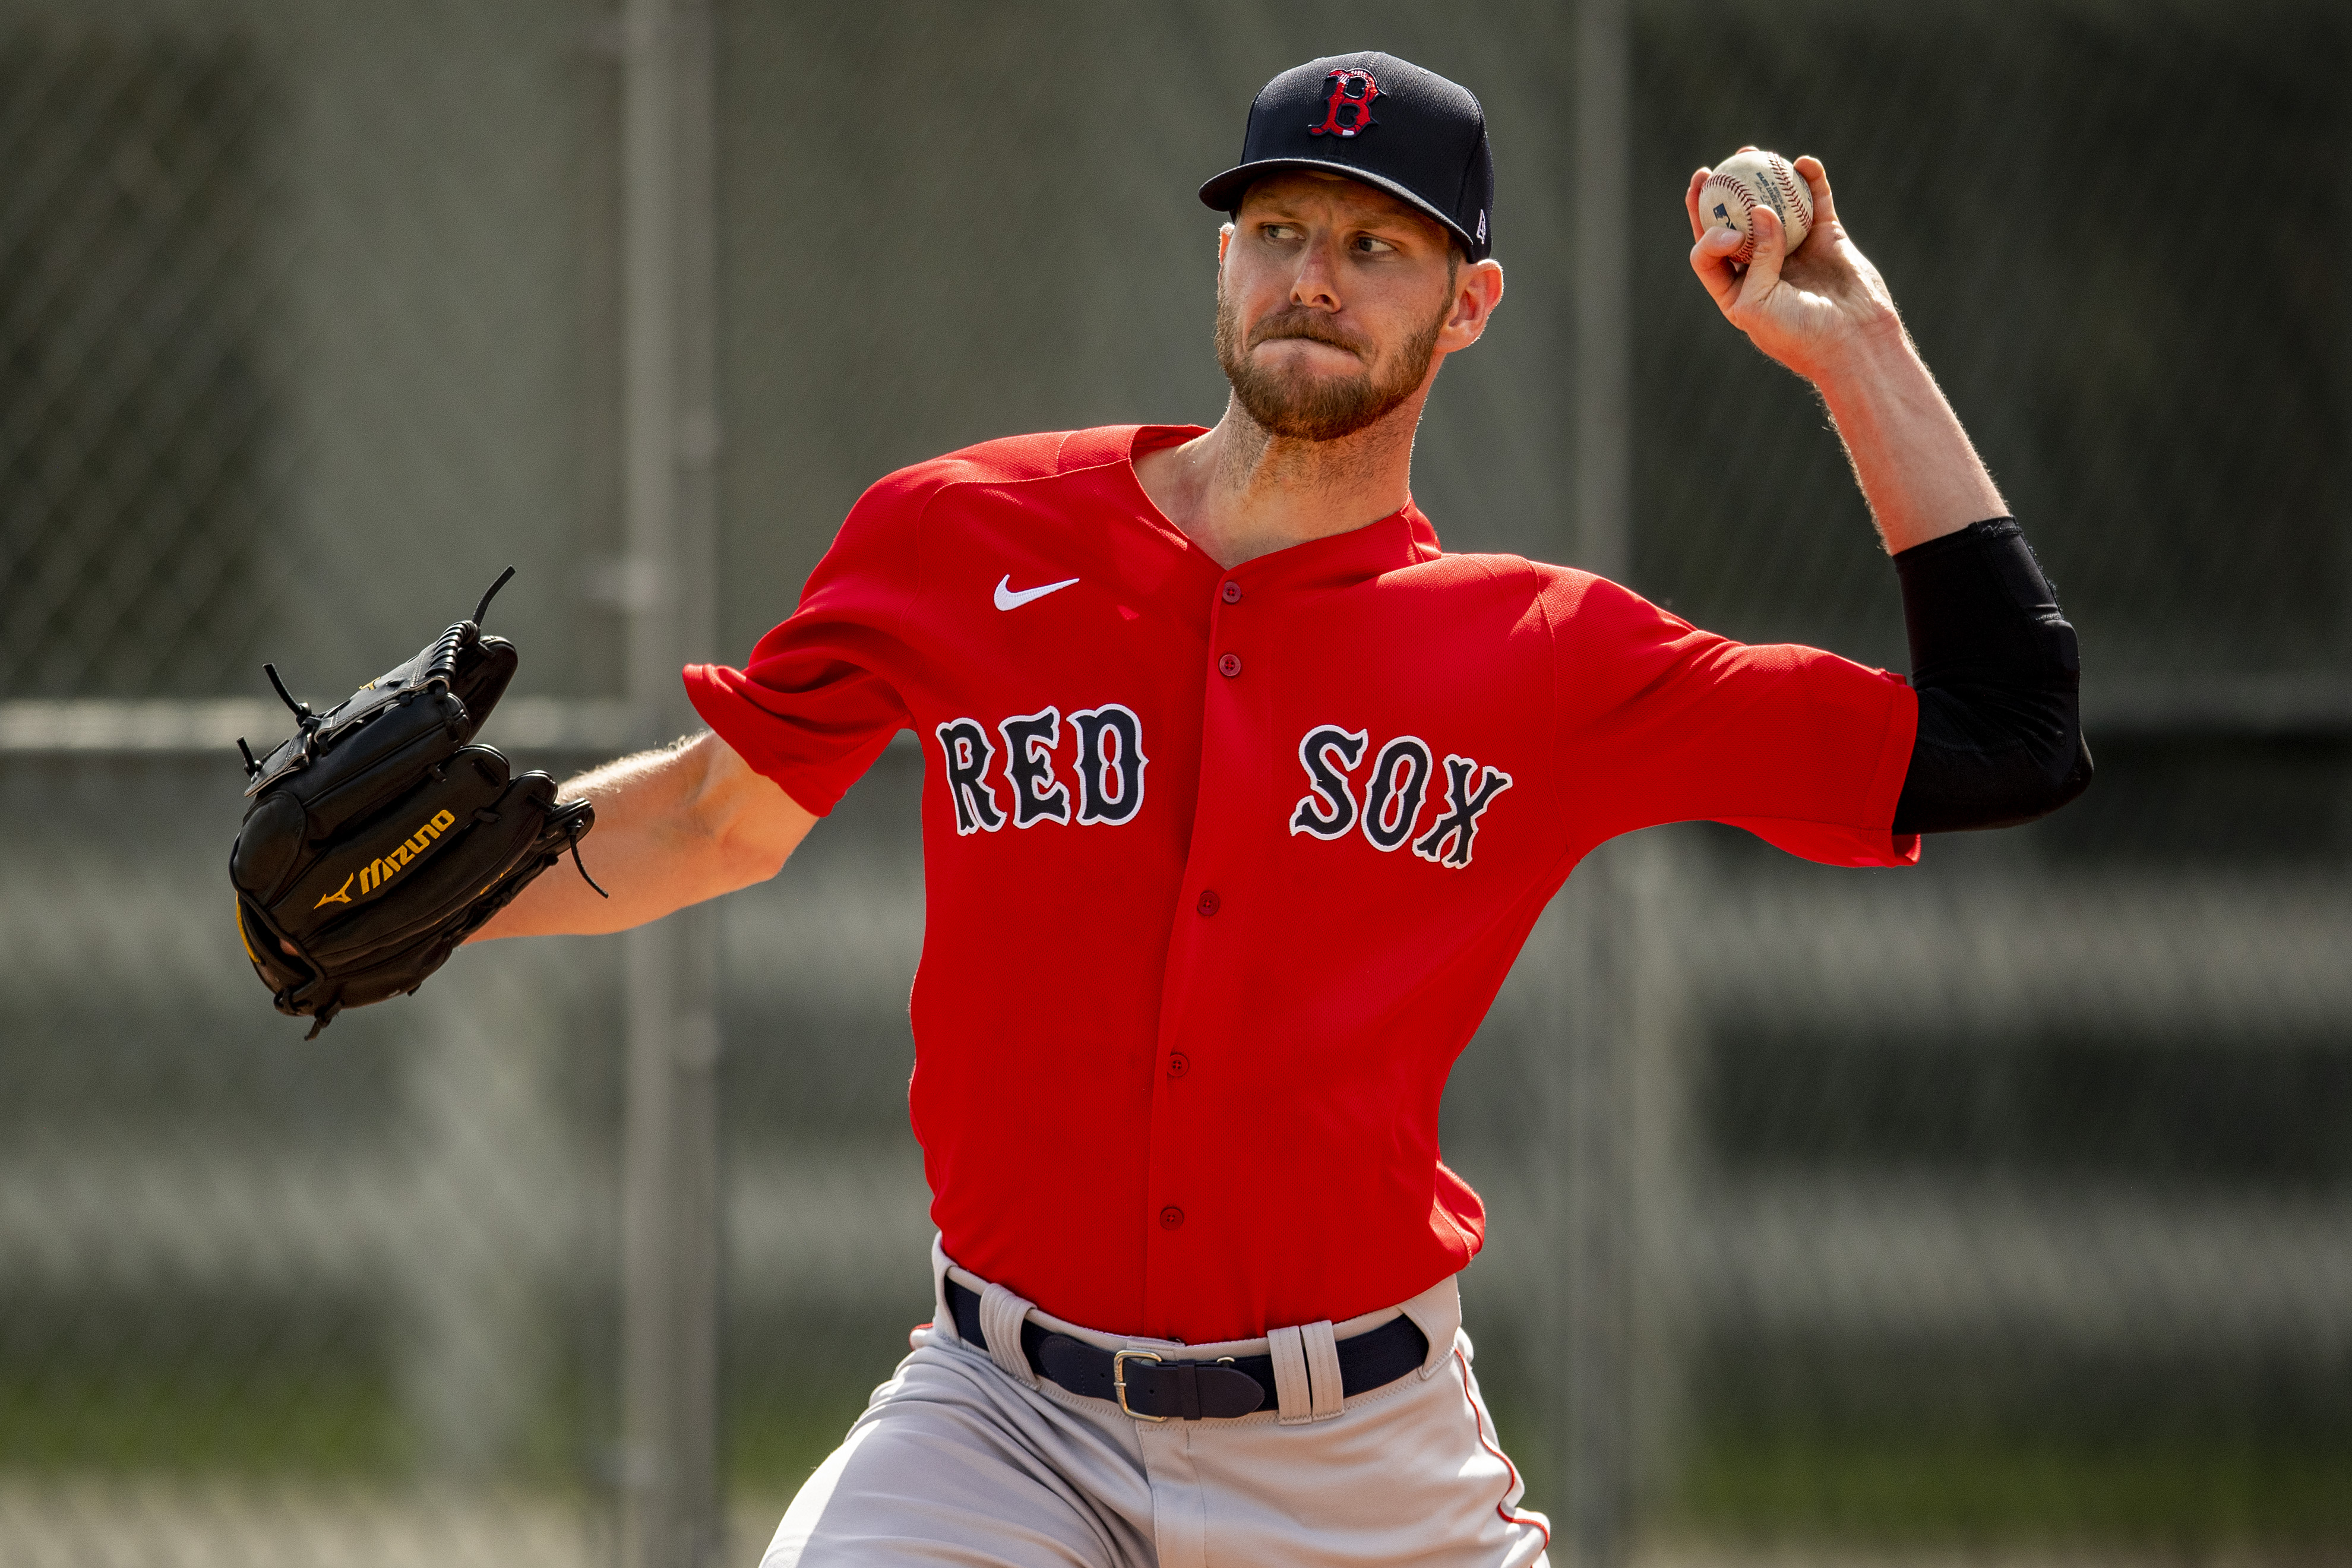 Red Sox pitcher Chris Sale to undergo Tommy John surgery